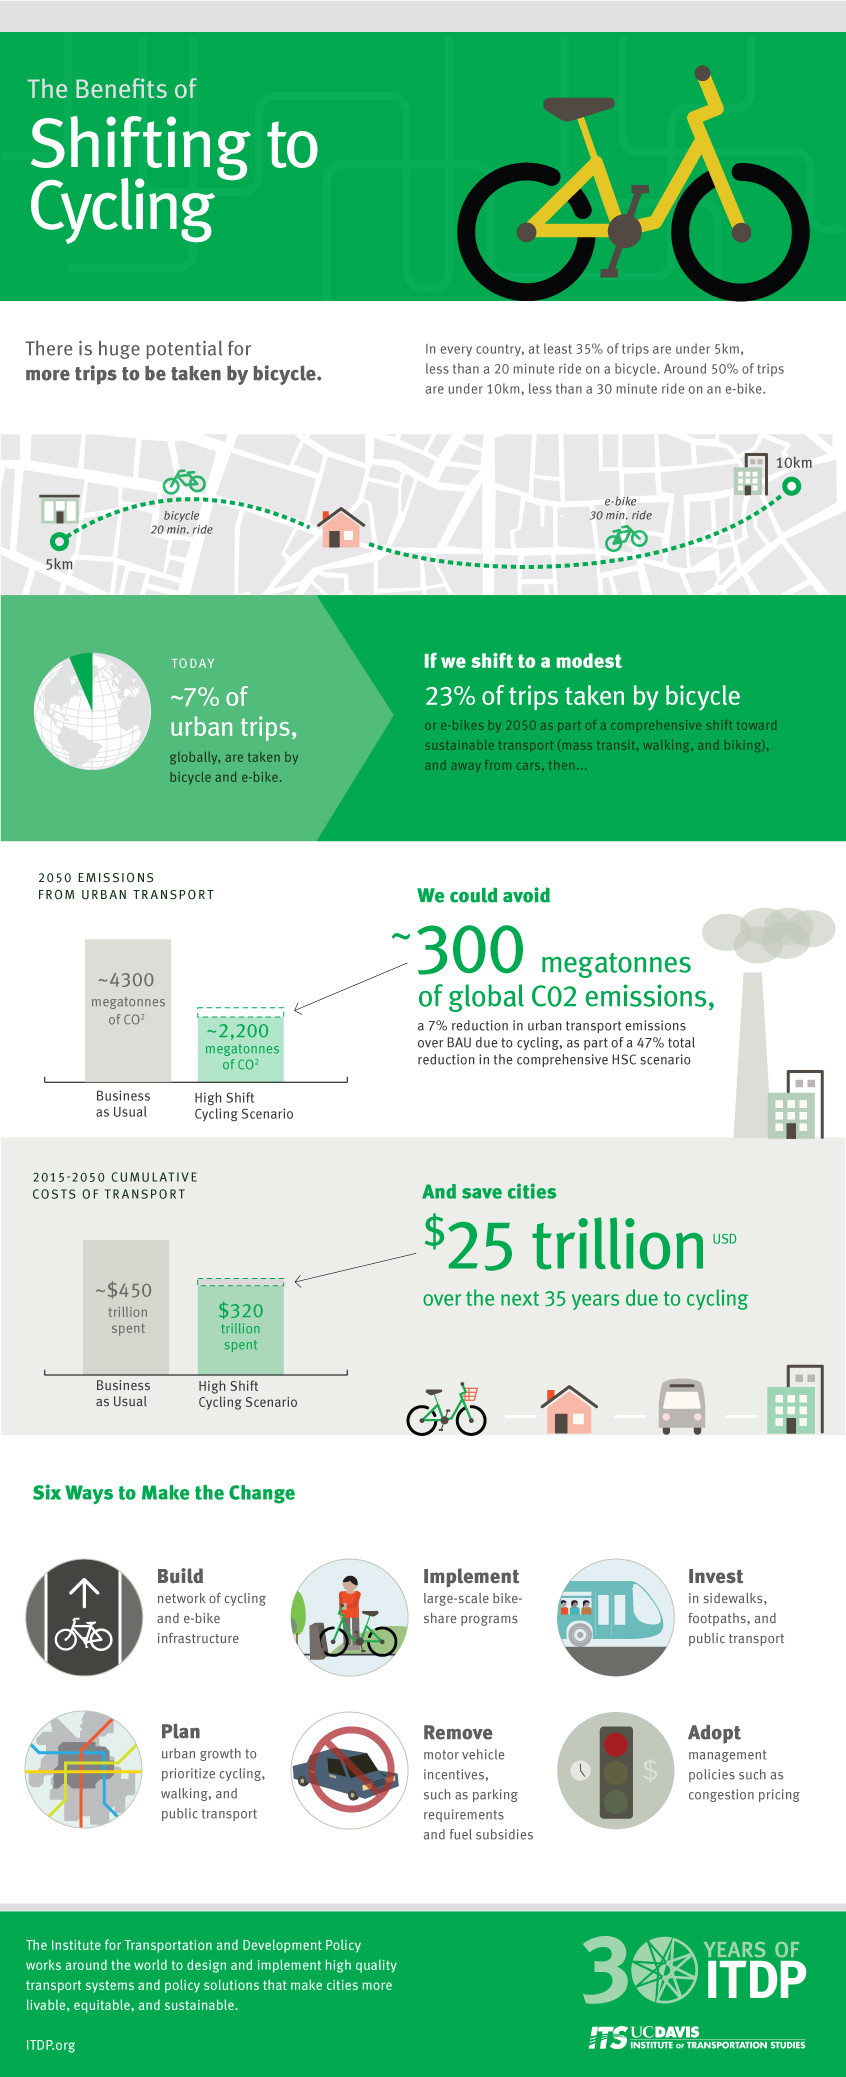 an infographic showing the benefits of shifting to cycling